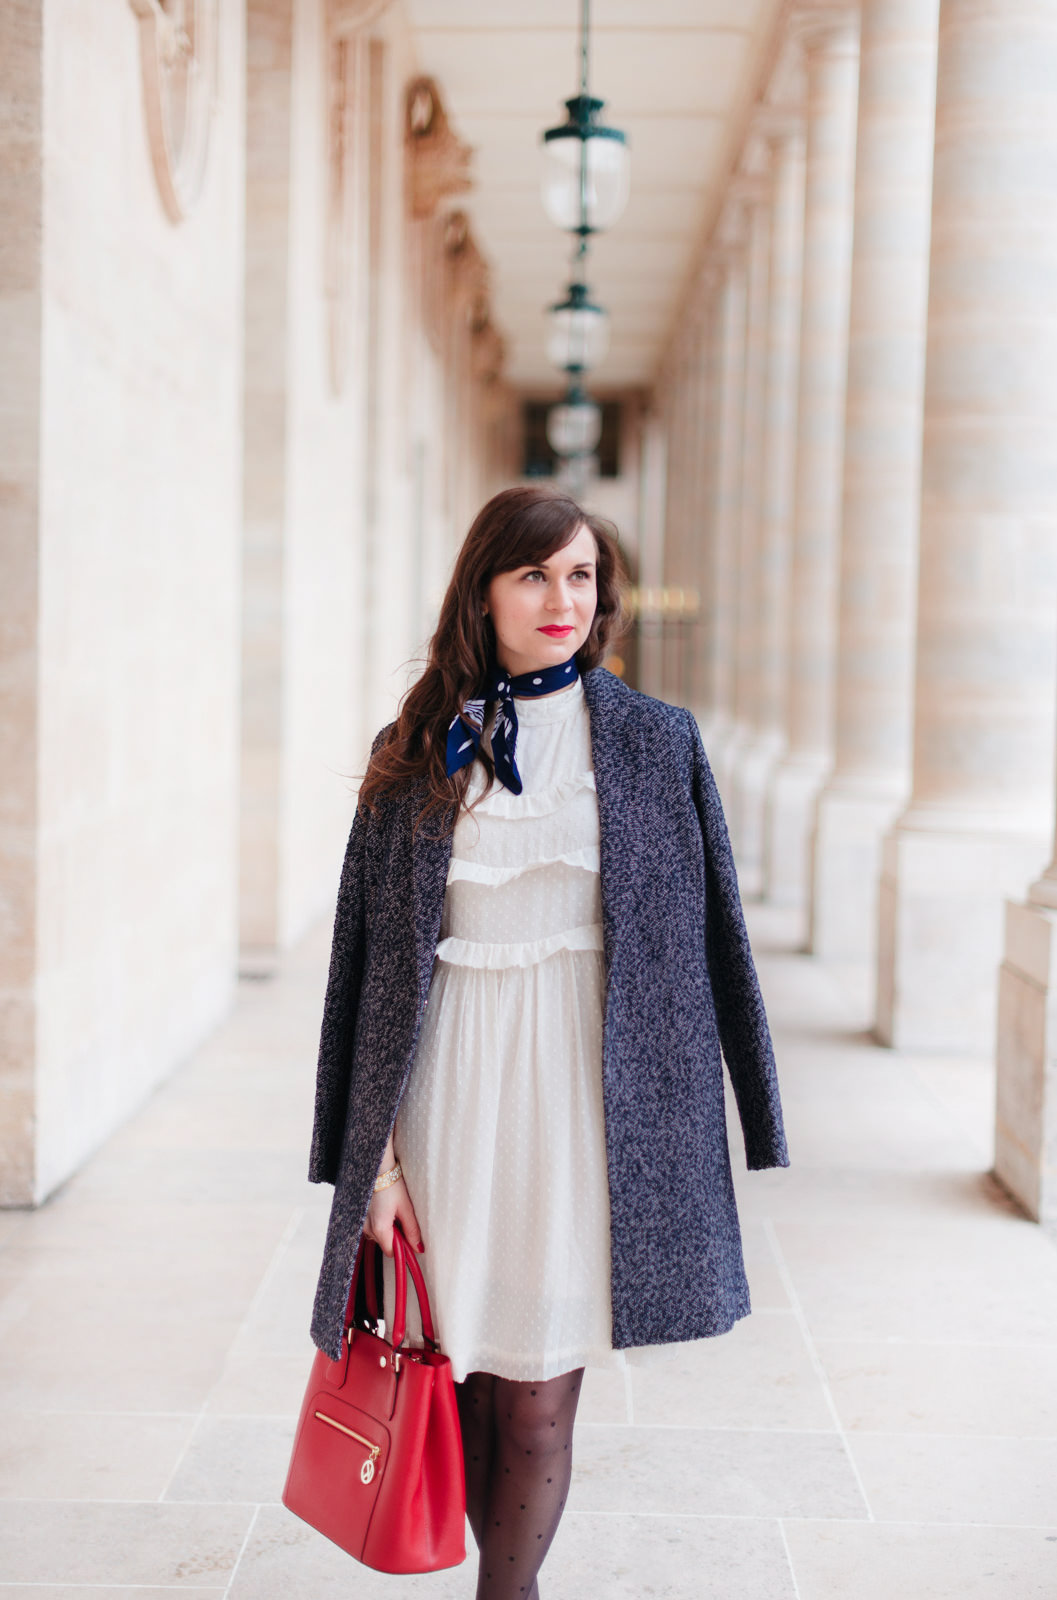 Blog-Mode-And-The-City-Lifestyle-Cinq-Petites-Choses-La-Note-Francaise-5